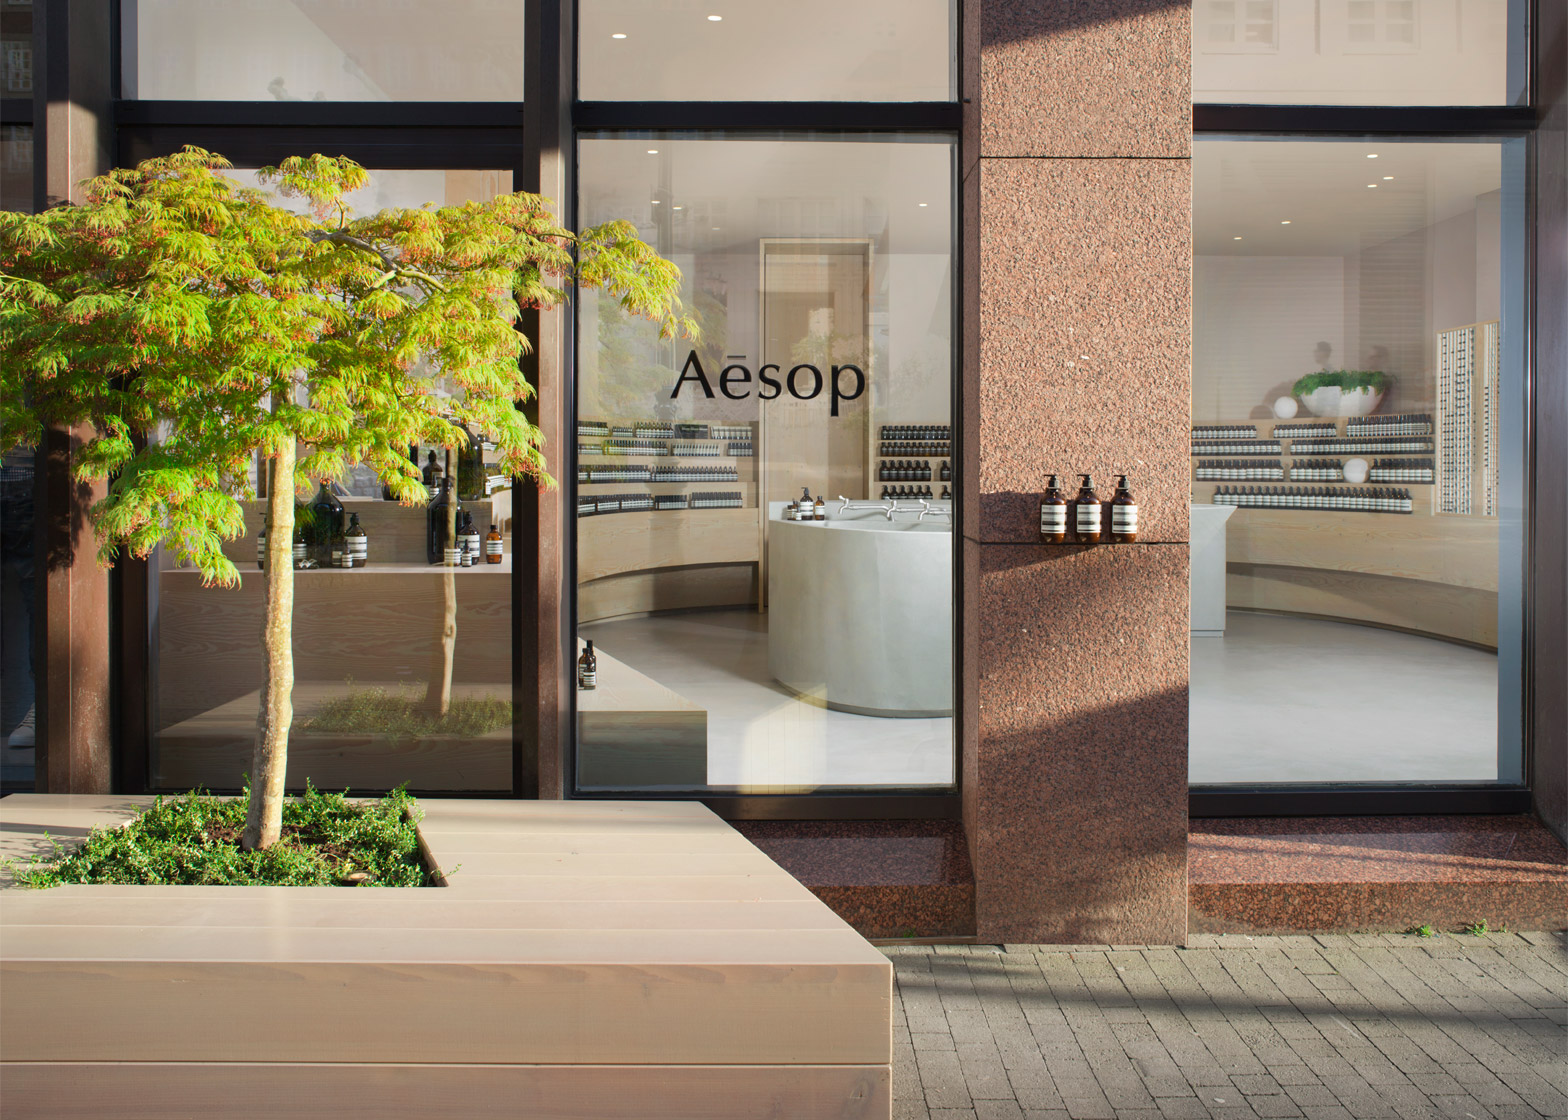 Aesop interior in Dusseldorf, Germany by Snøhetta